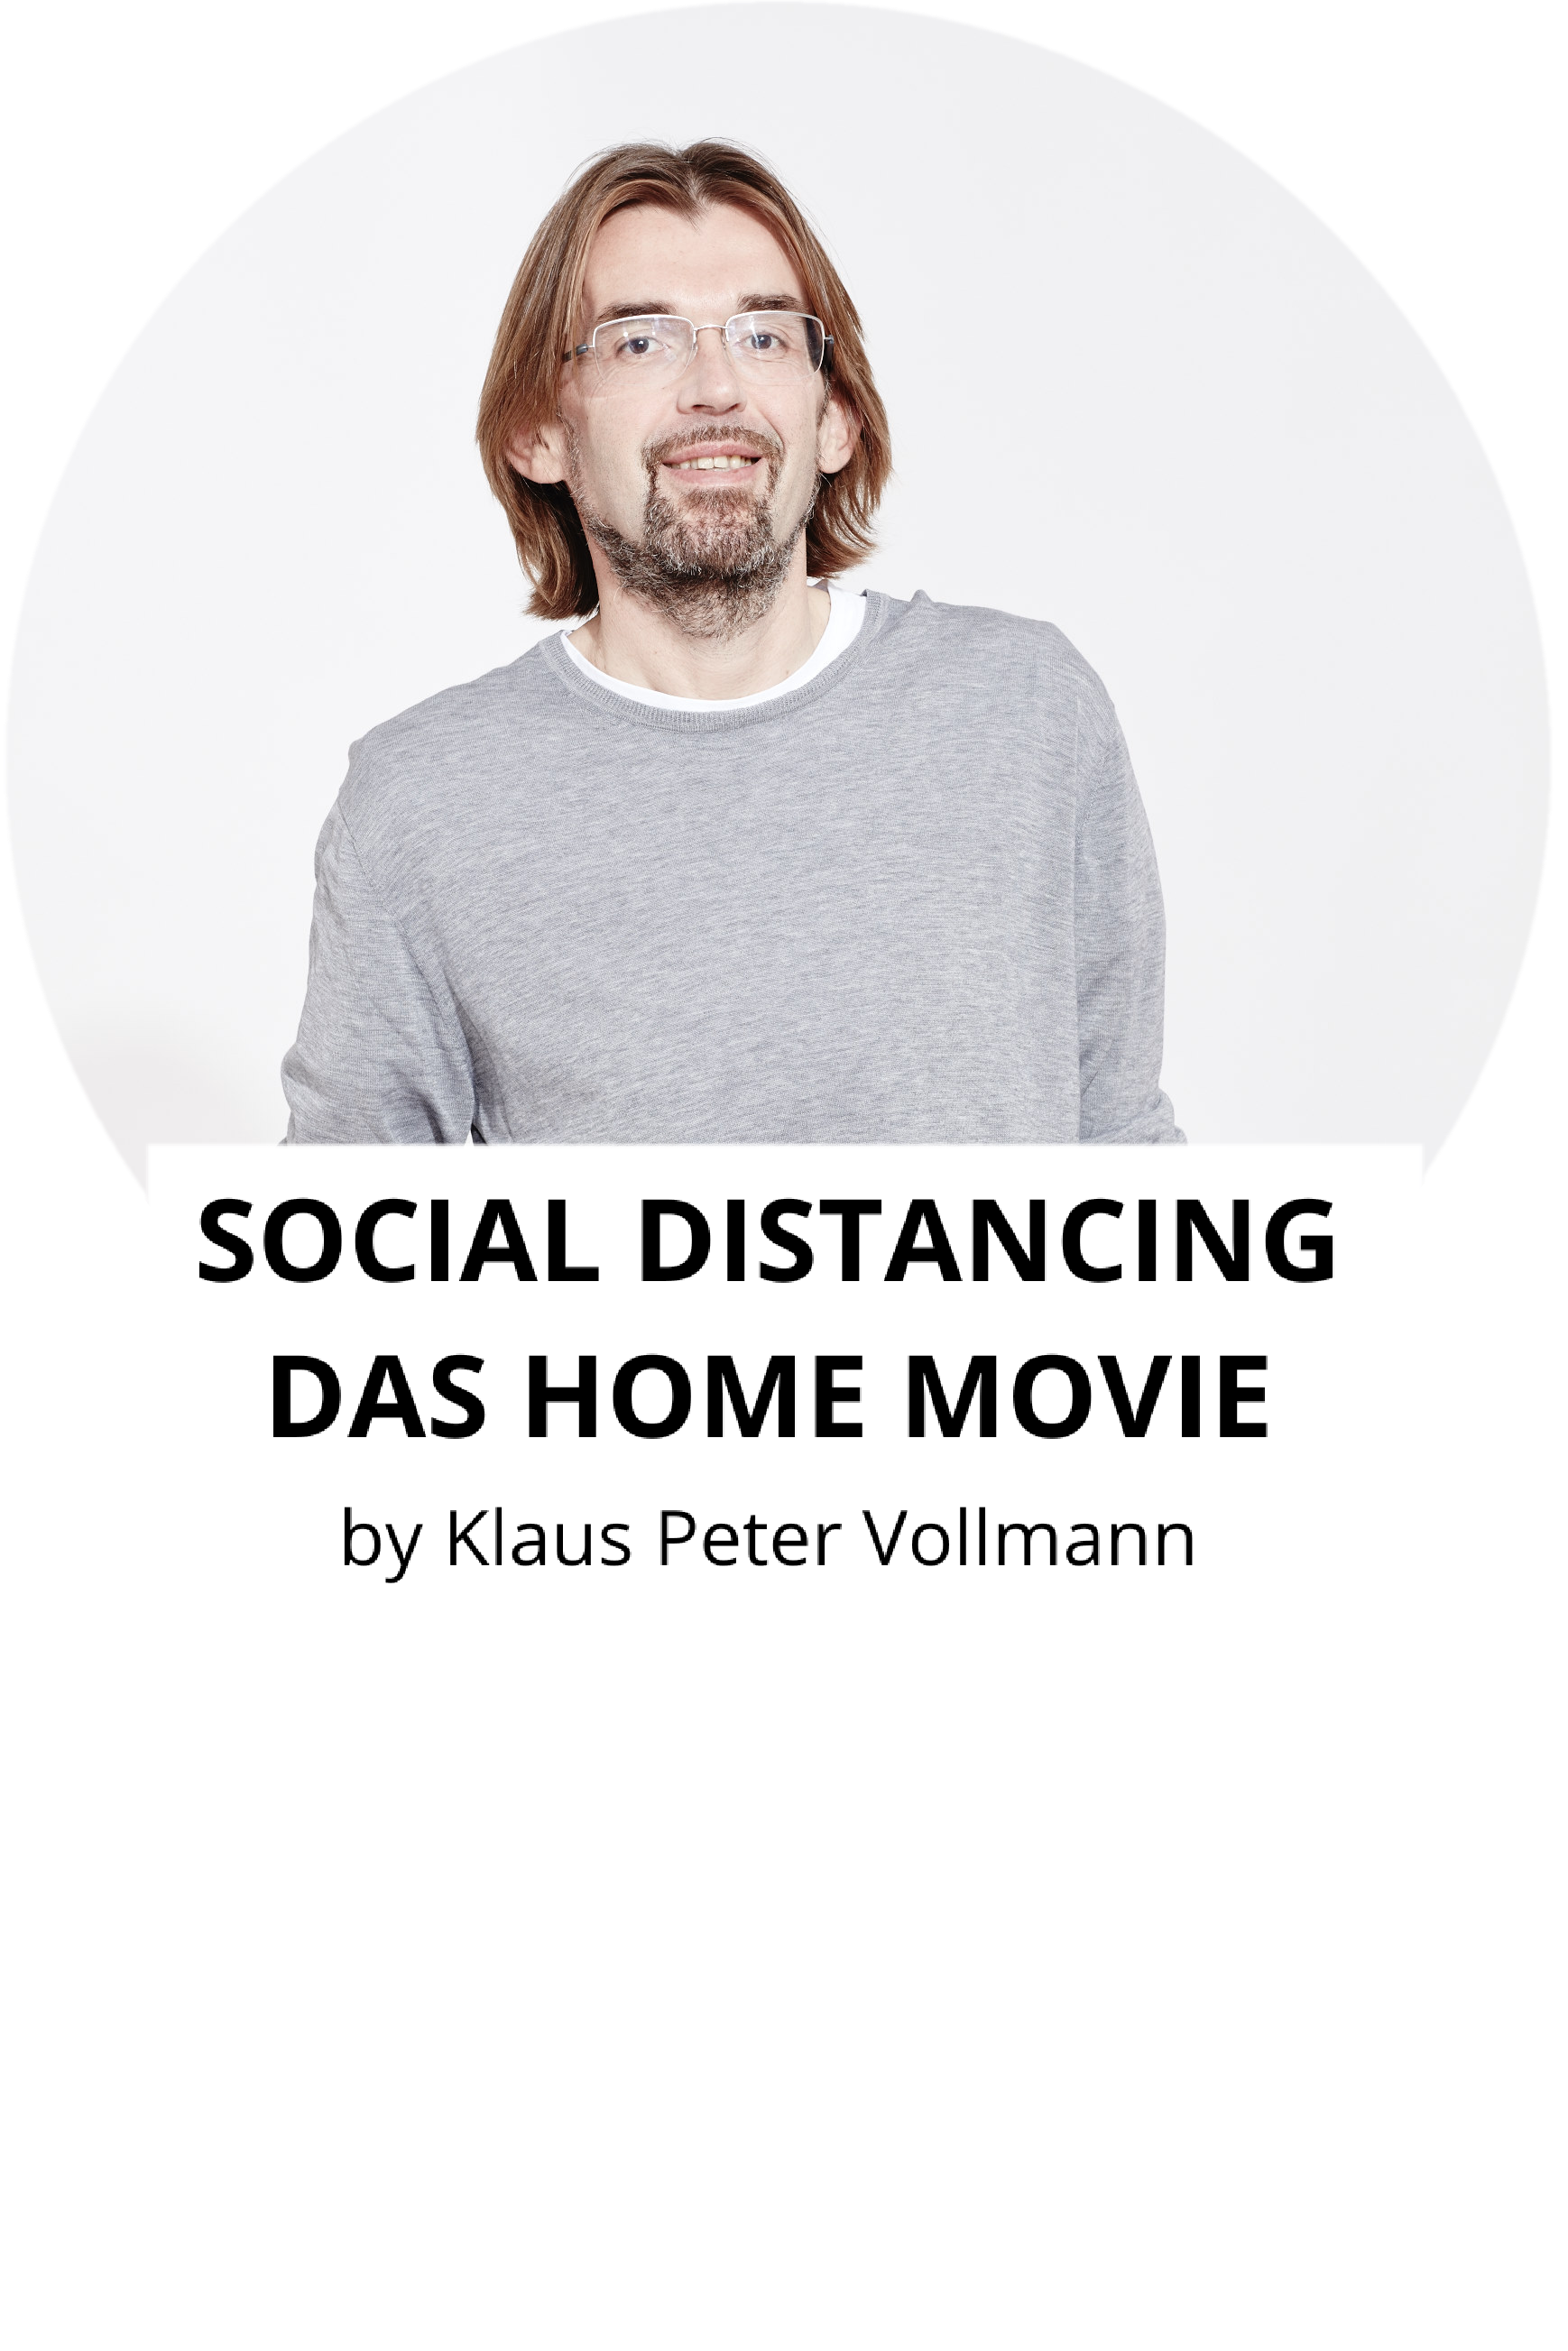 SOCIAL DISTANCING – DAS HOME MOVIE